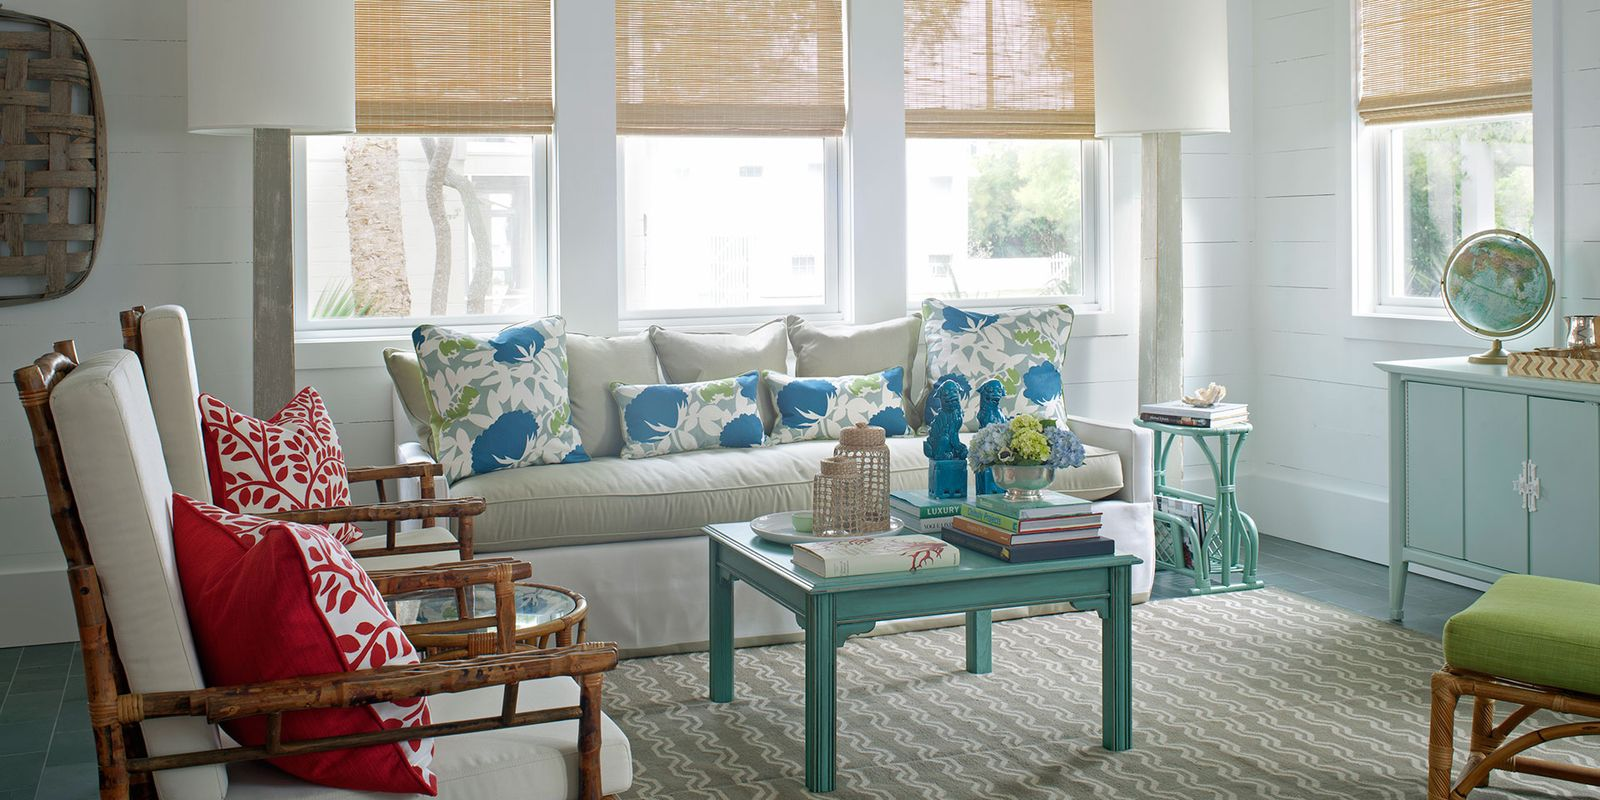 Http Www Goodhousekeeping Com Home Decorating Ideas Colorful Rooms Kelly Green Living Room